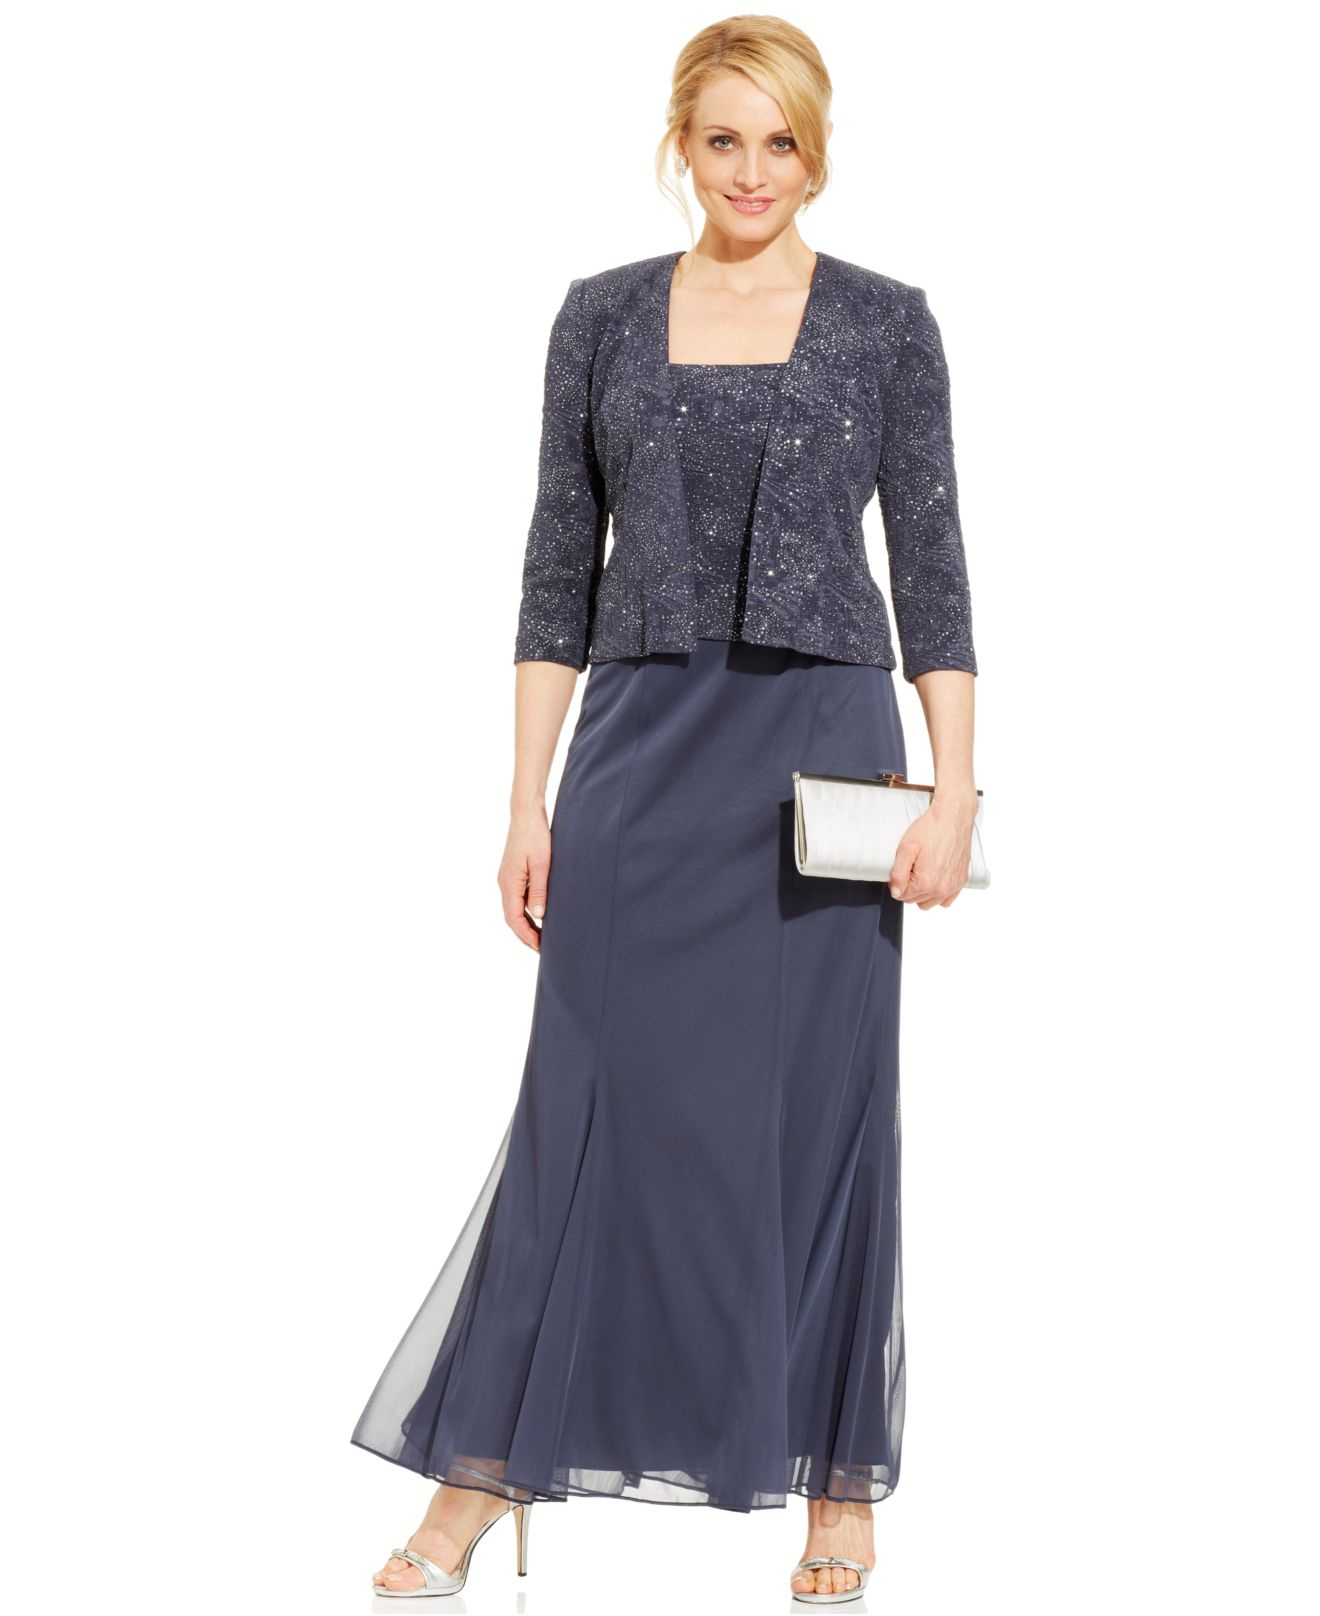 Lyst Alex Evenings Petite Sleeveless Glitter Gown And Jacket In Gray